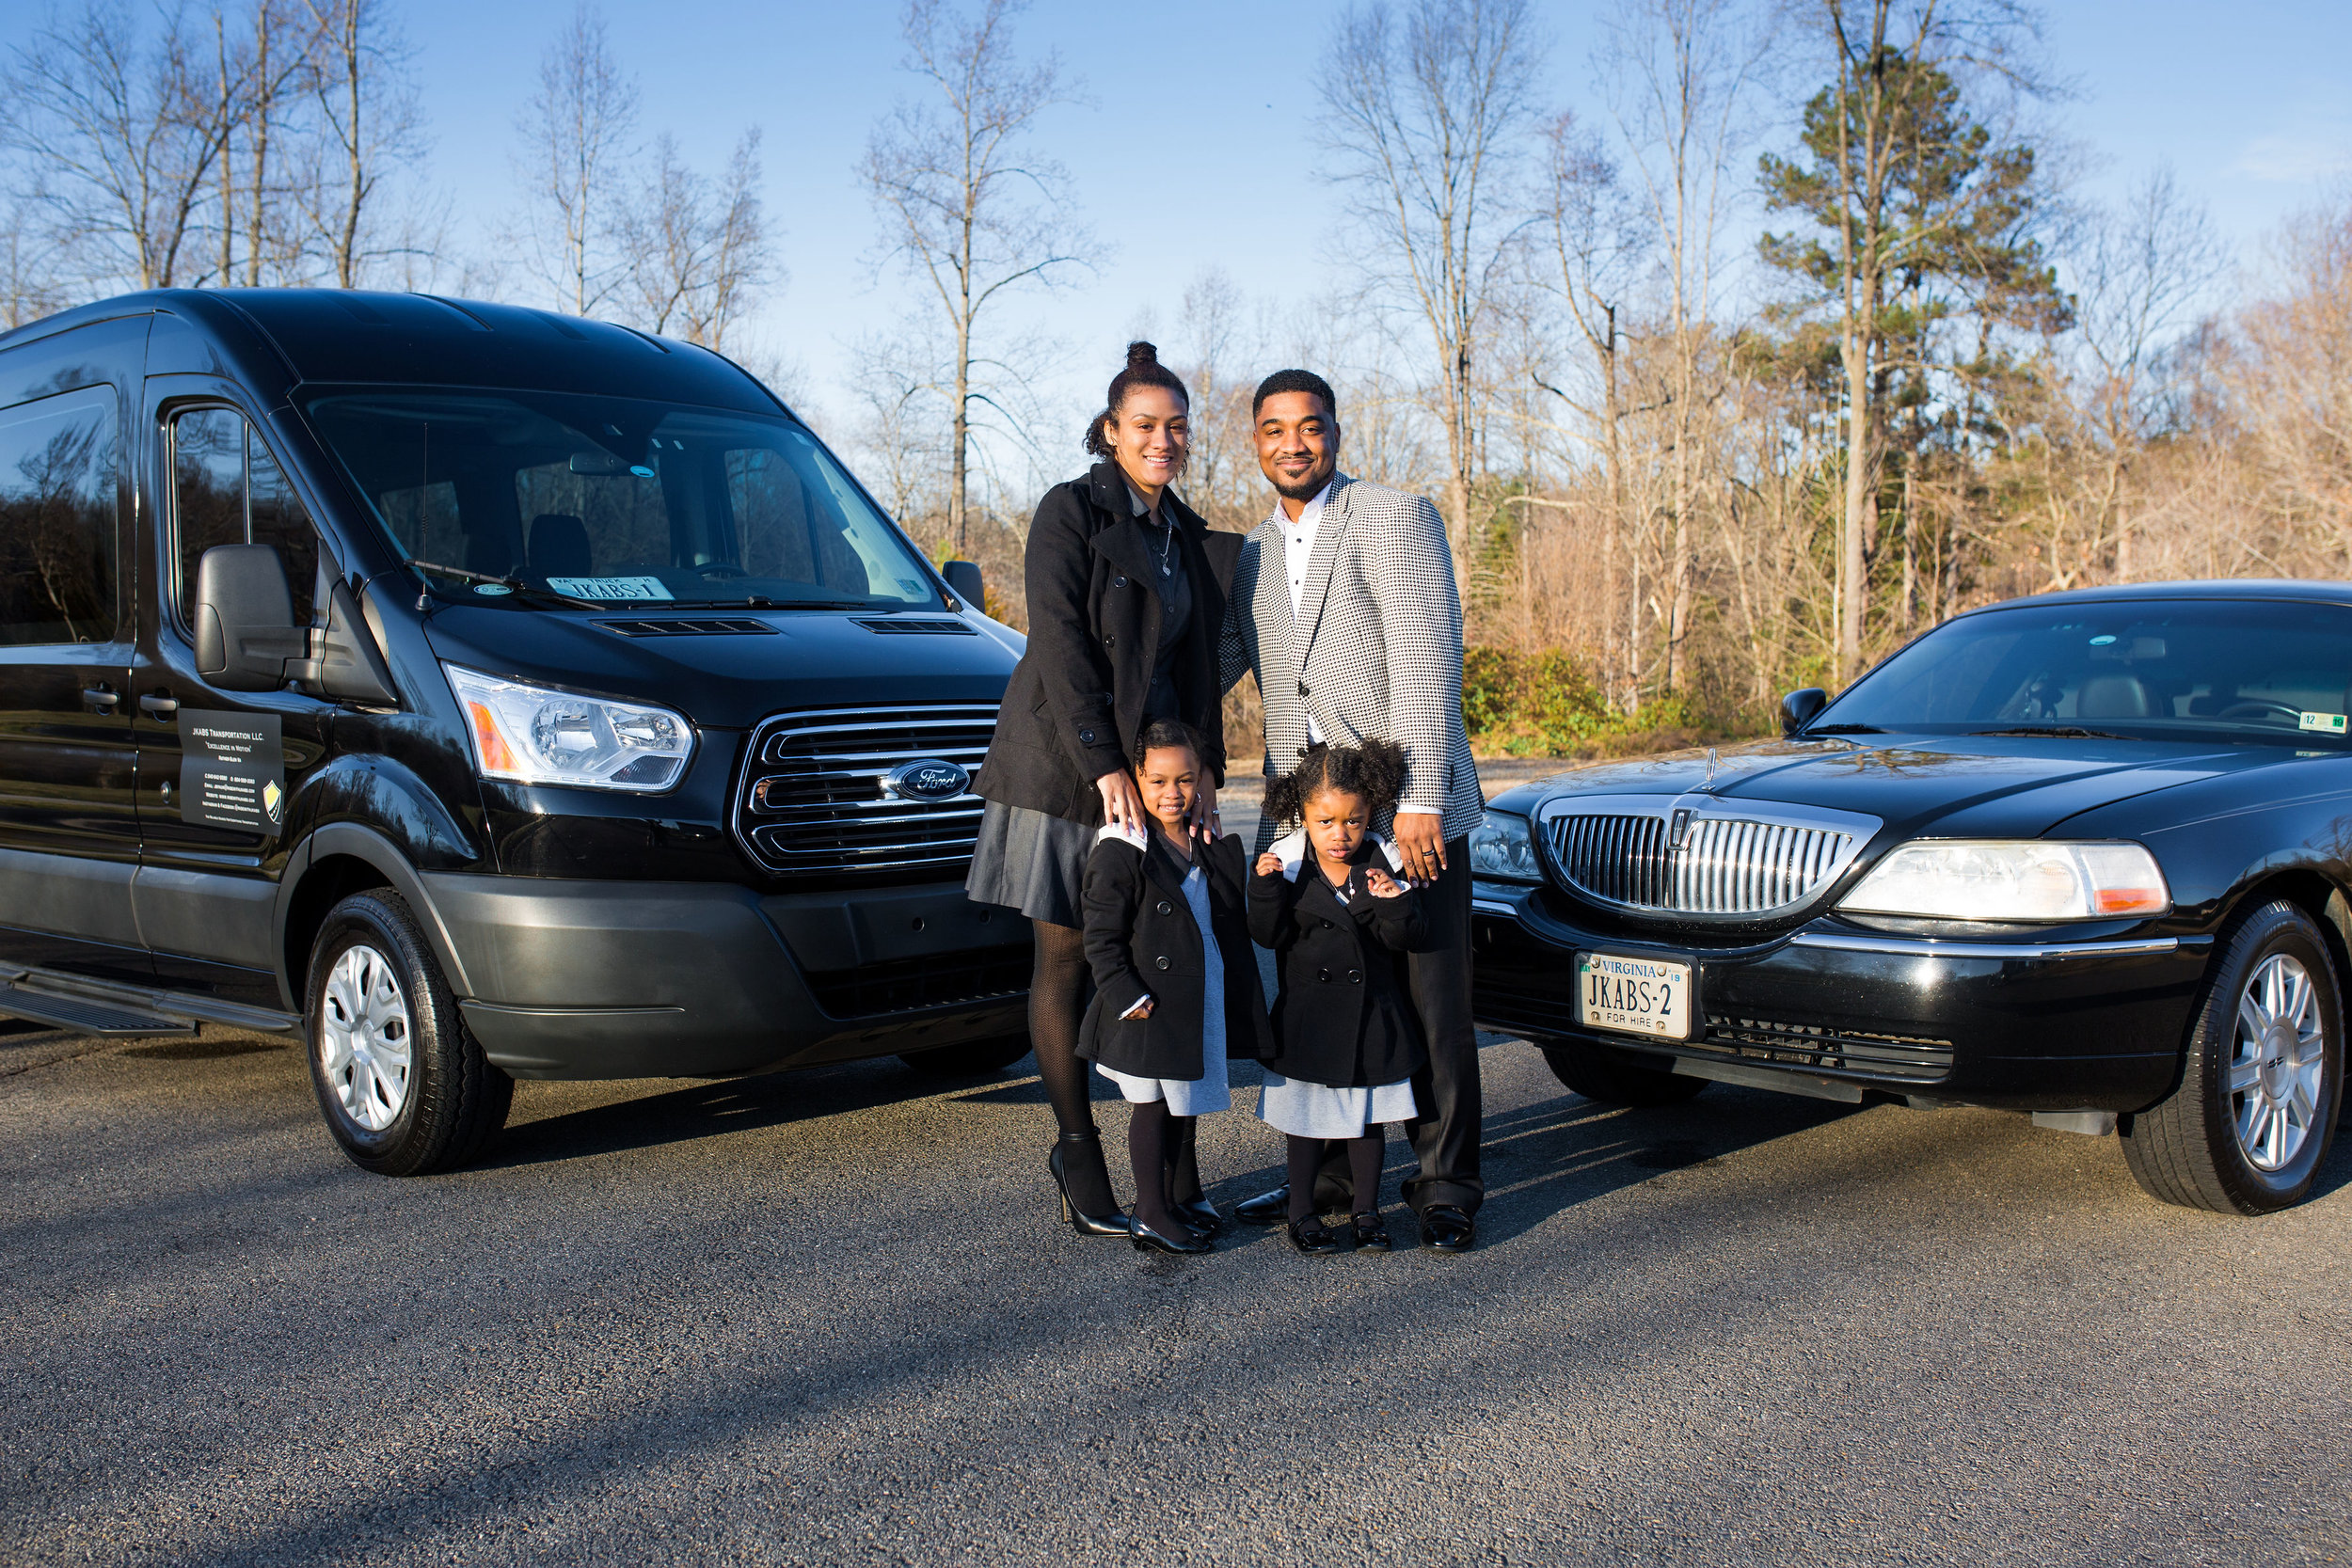 J-Kabs Transportation, Family Owned & Operated